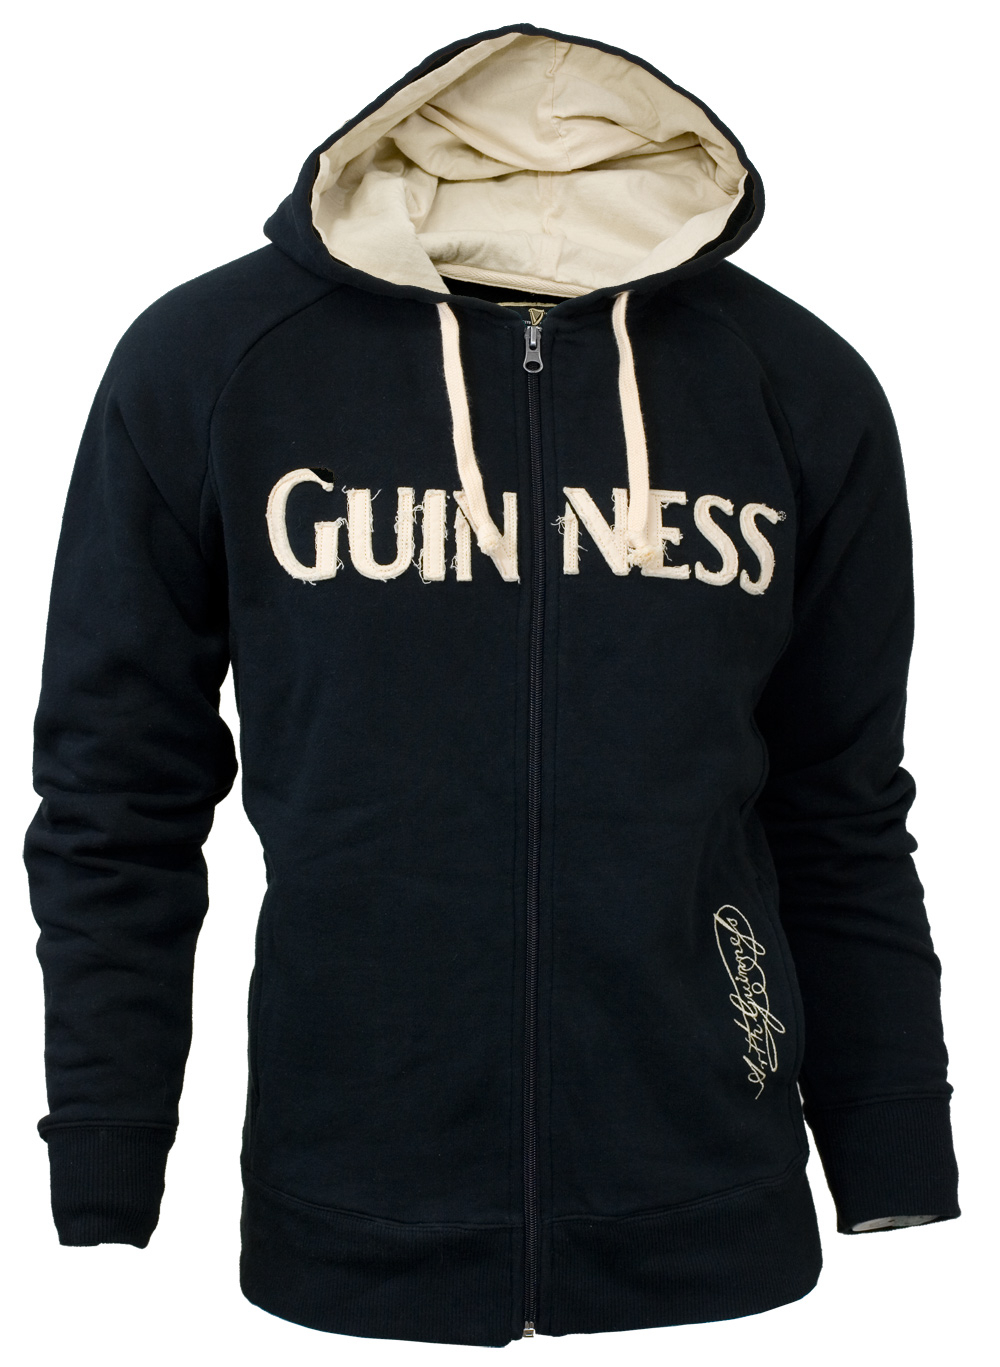 Guinness Black Zip Hoodie with Applique